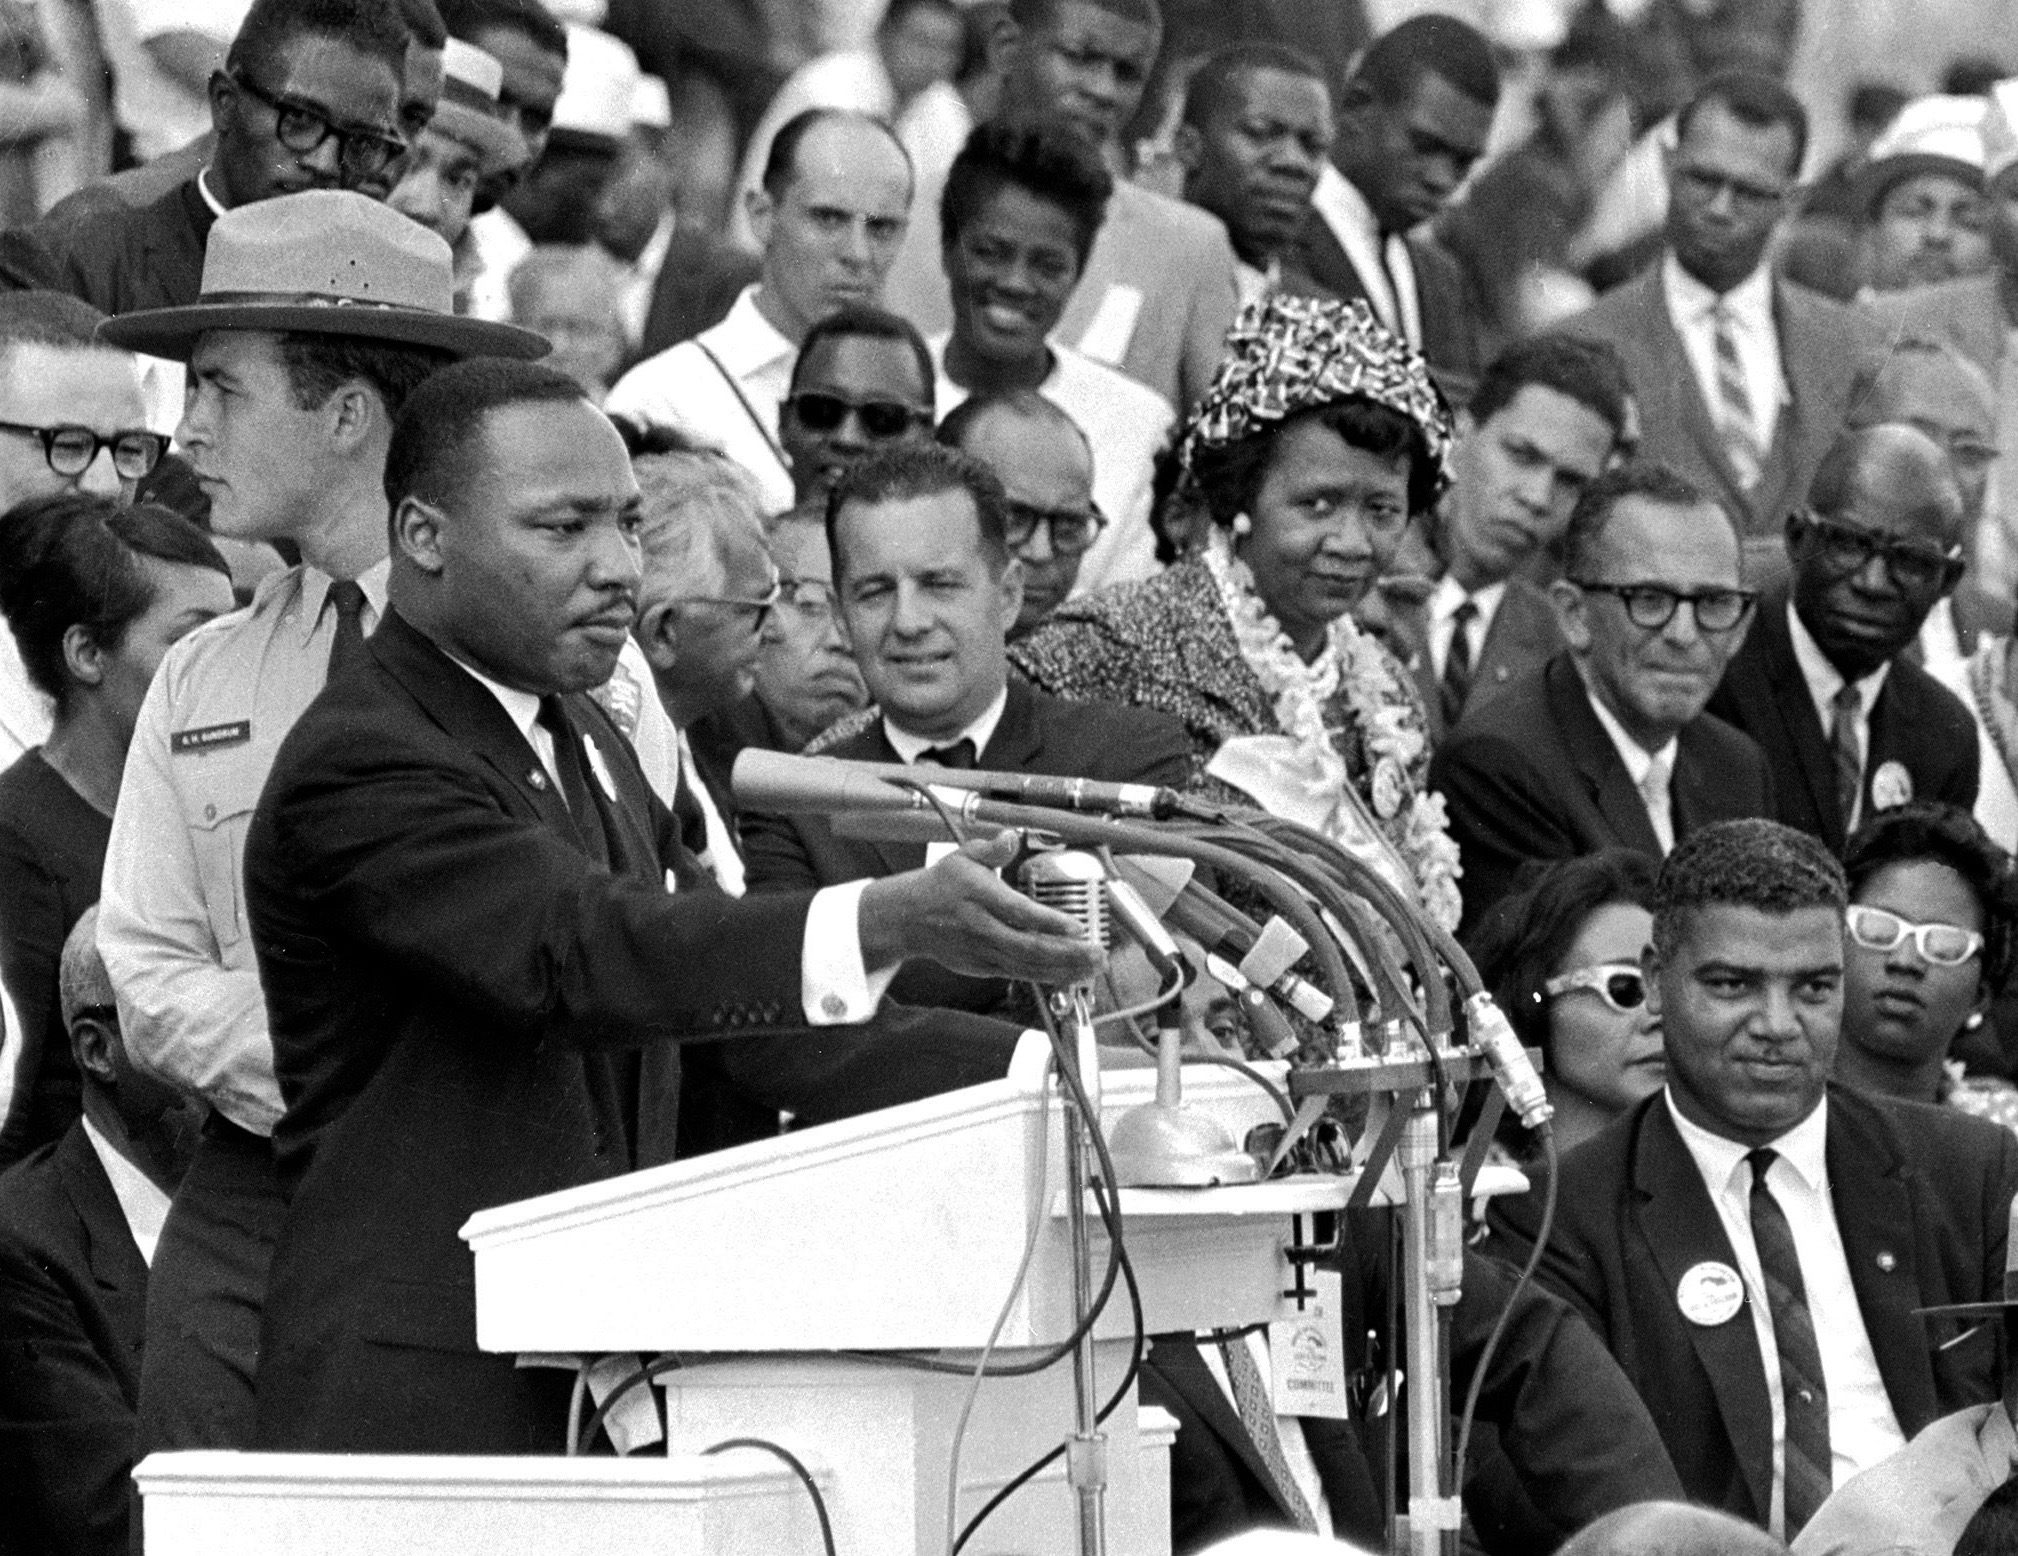 Martin Luther King Jr Gave I Have A Dream Speech In Washington In 1963 Vintage Photos Pennlive Com